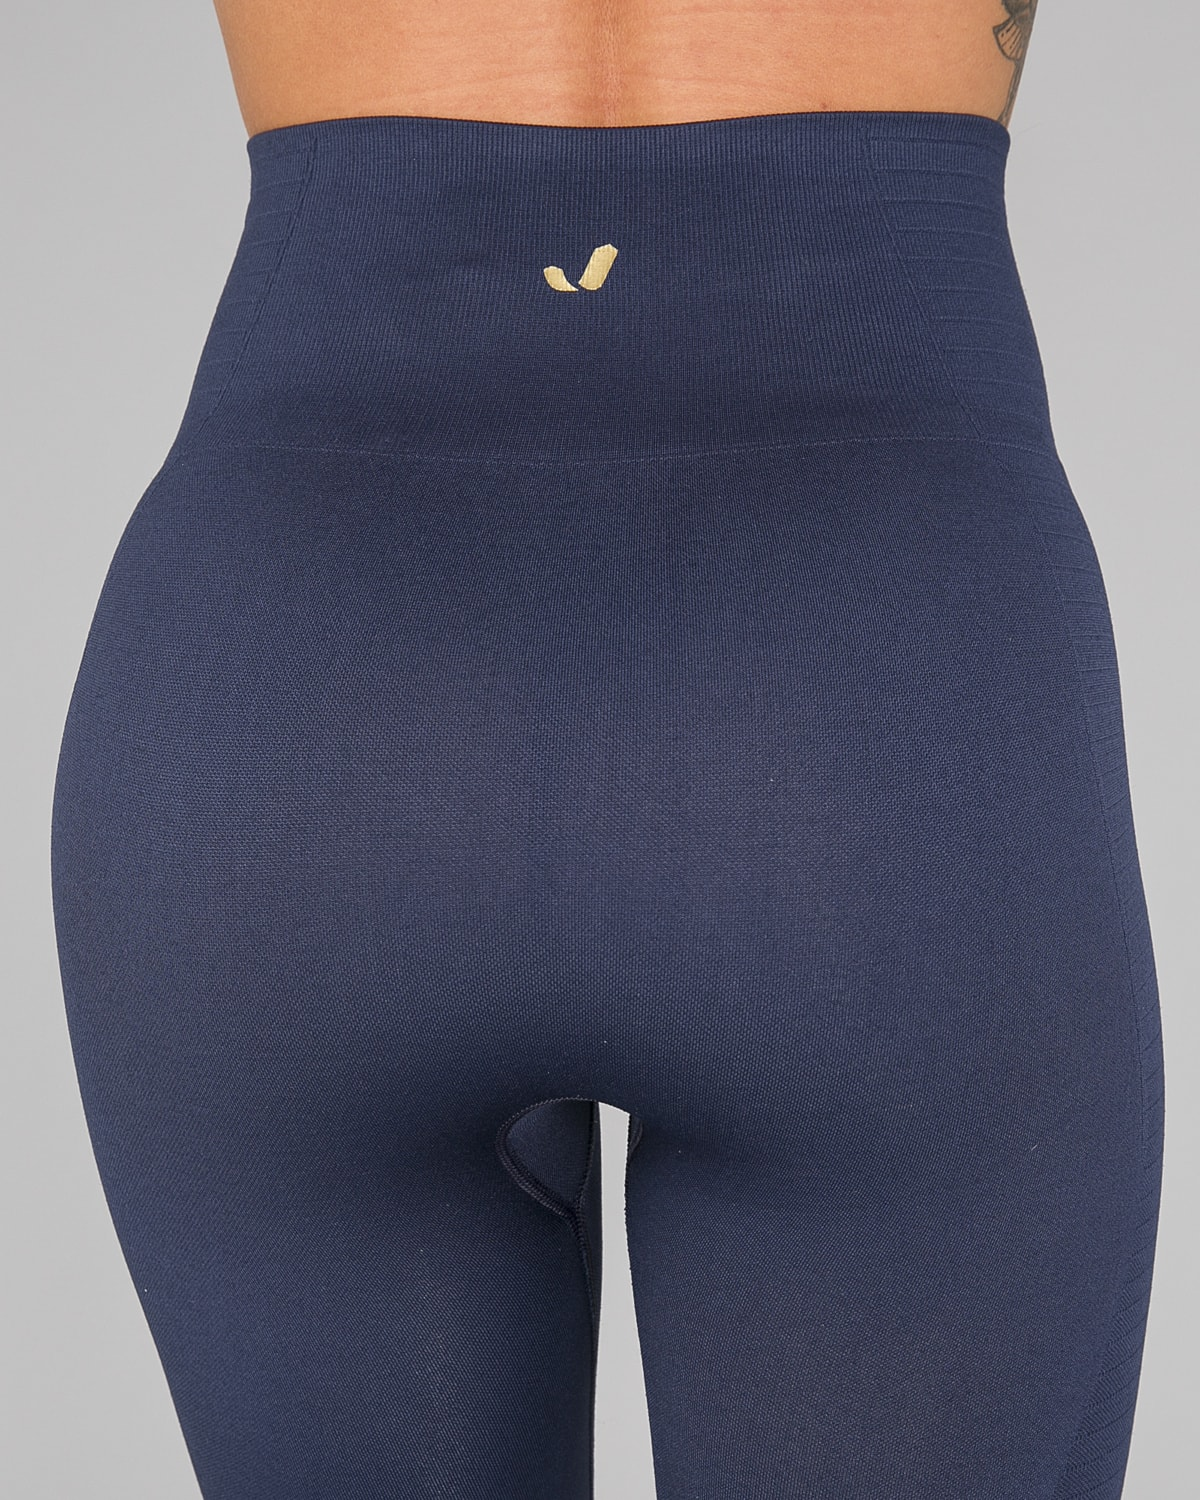 Jerf Gela 2.0 tights Navy Blue24